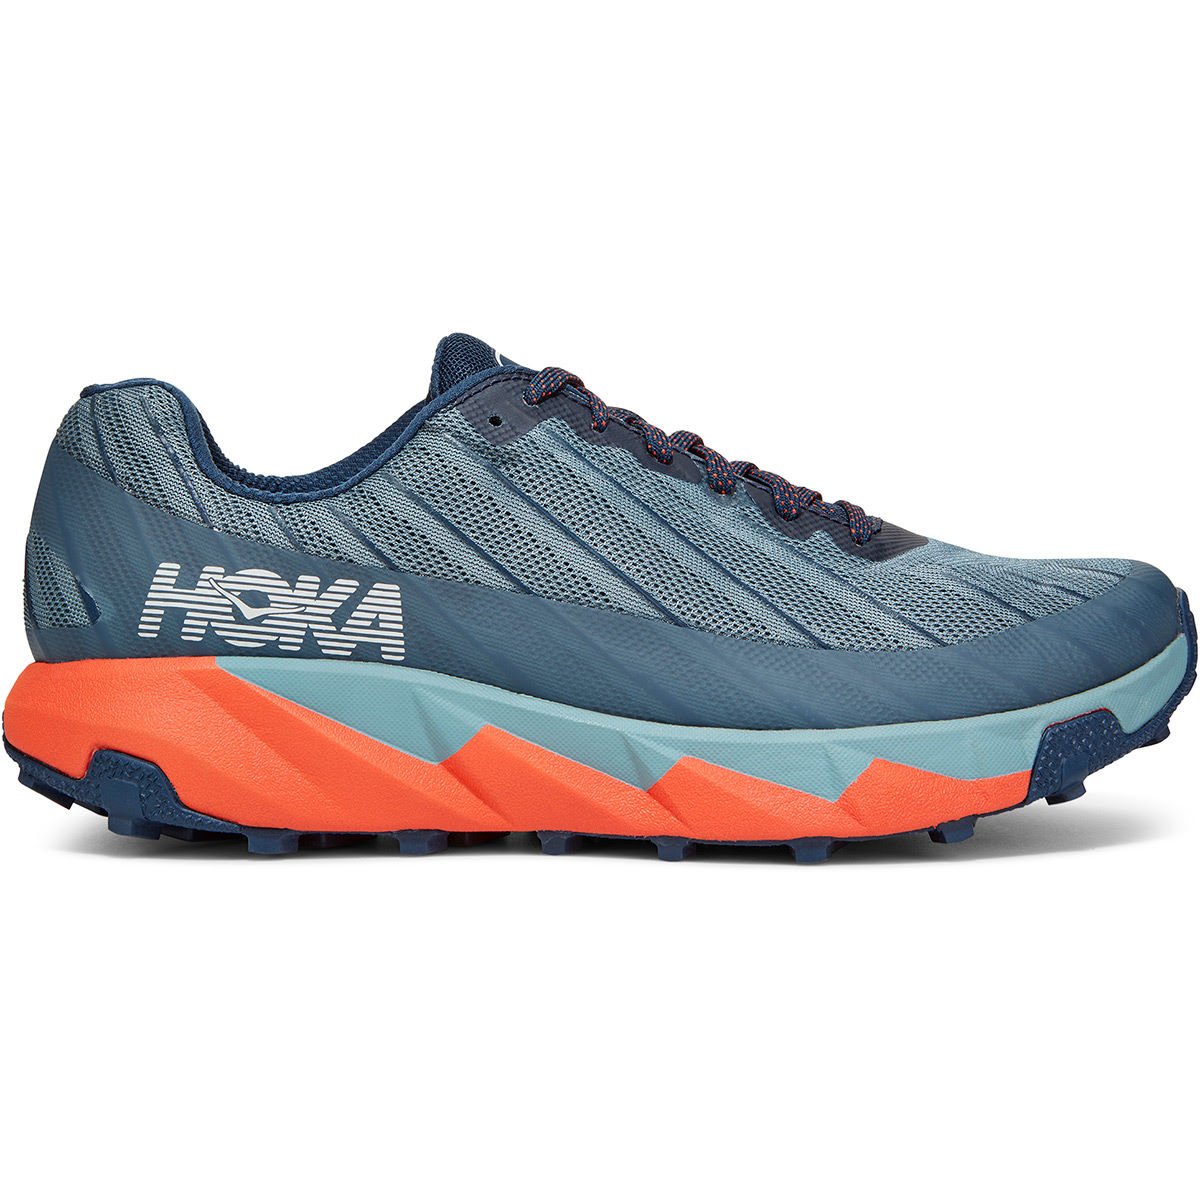 Zapatillas de trail running Hoka One One Torrent Trail - Zapatillas de trail running